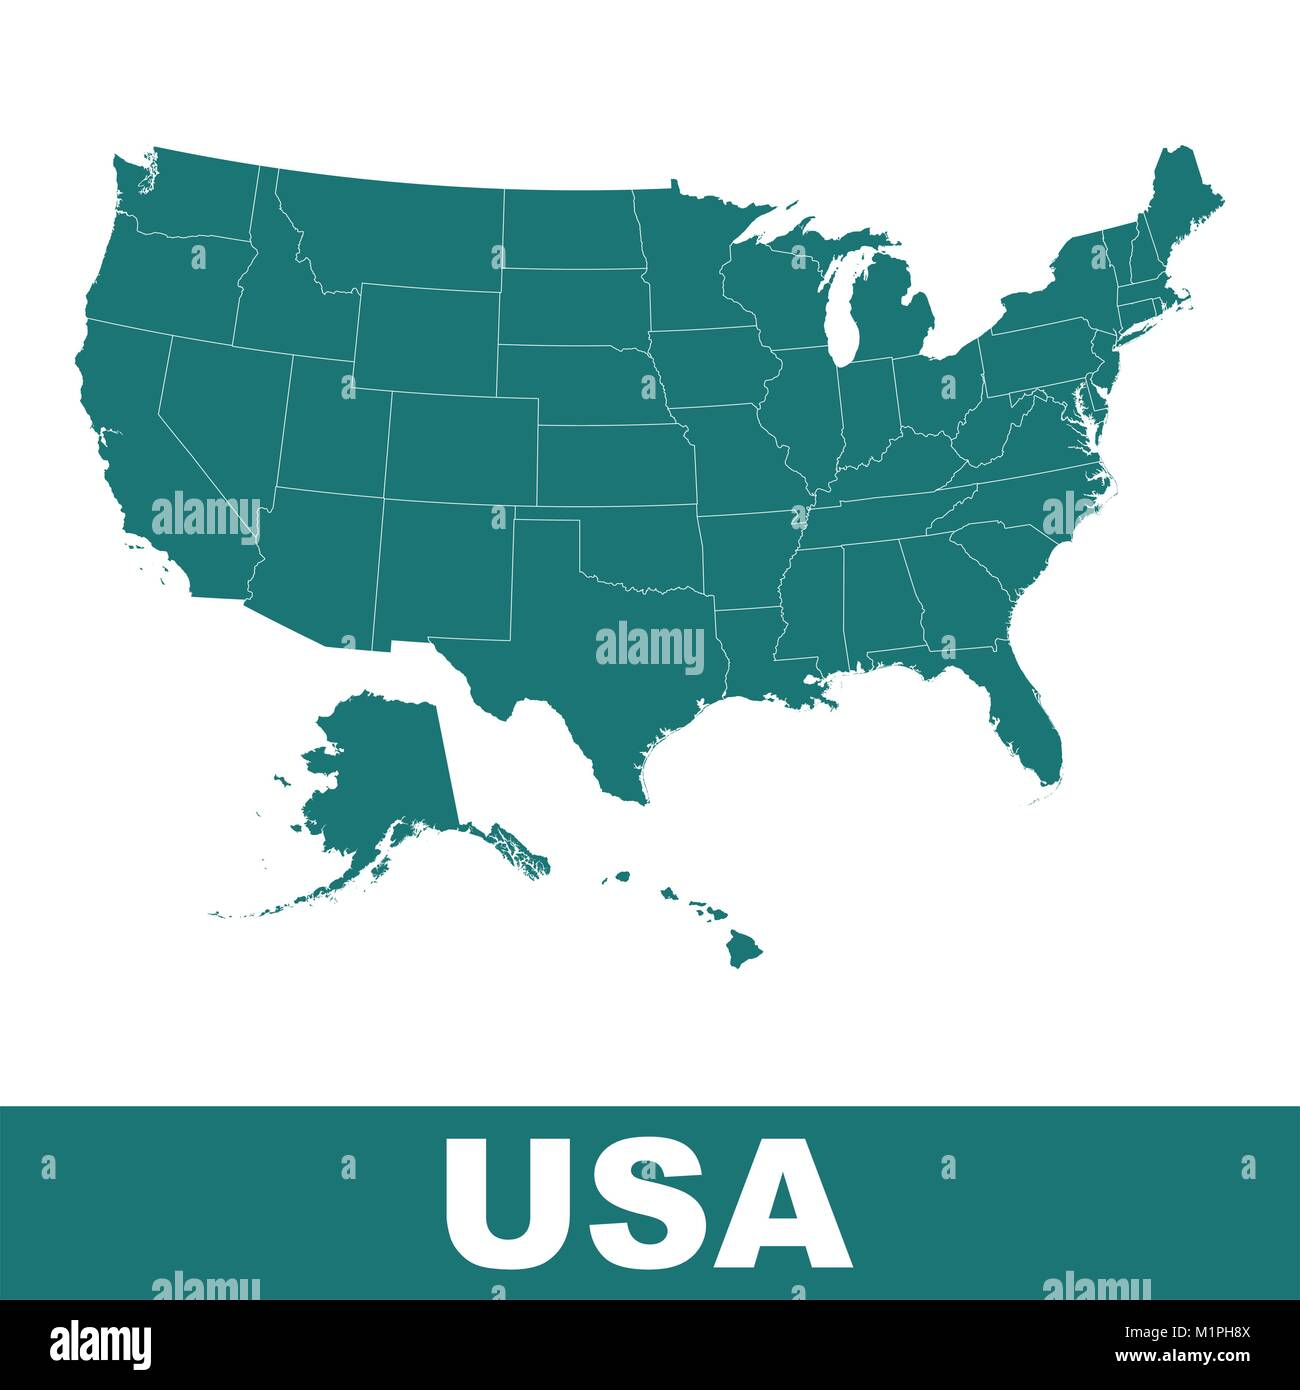 Images of a map of the united states san francisco street map united states map alaska and hawaii stock photos united states high detailed vector map united states sciox Choice Image